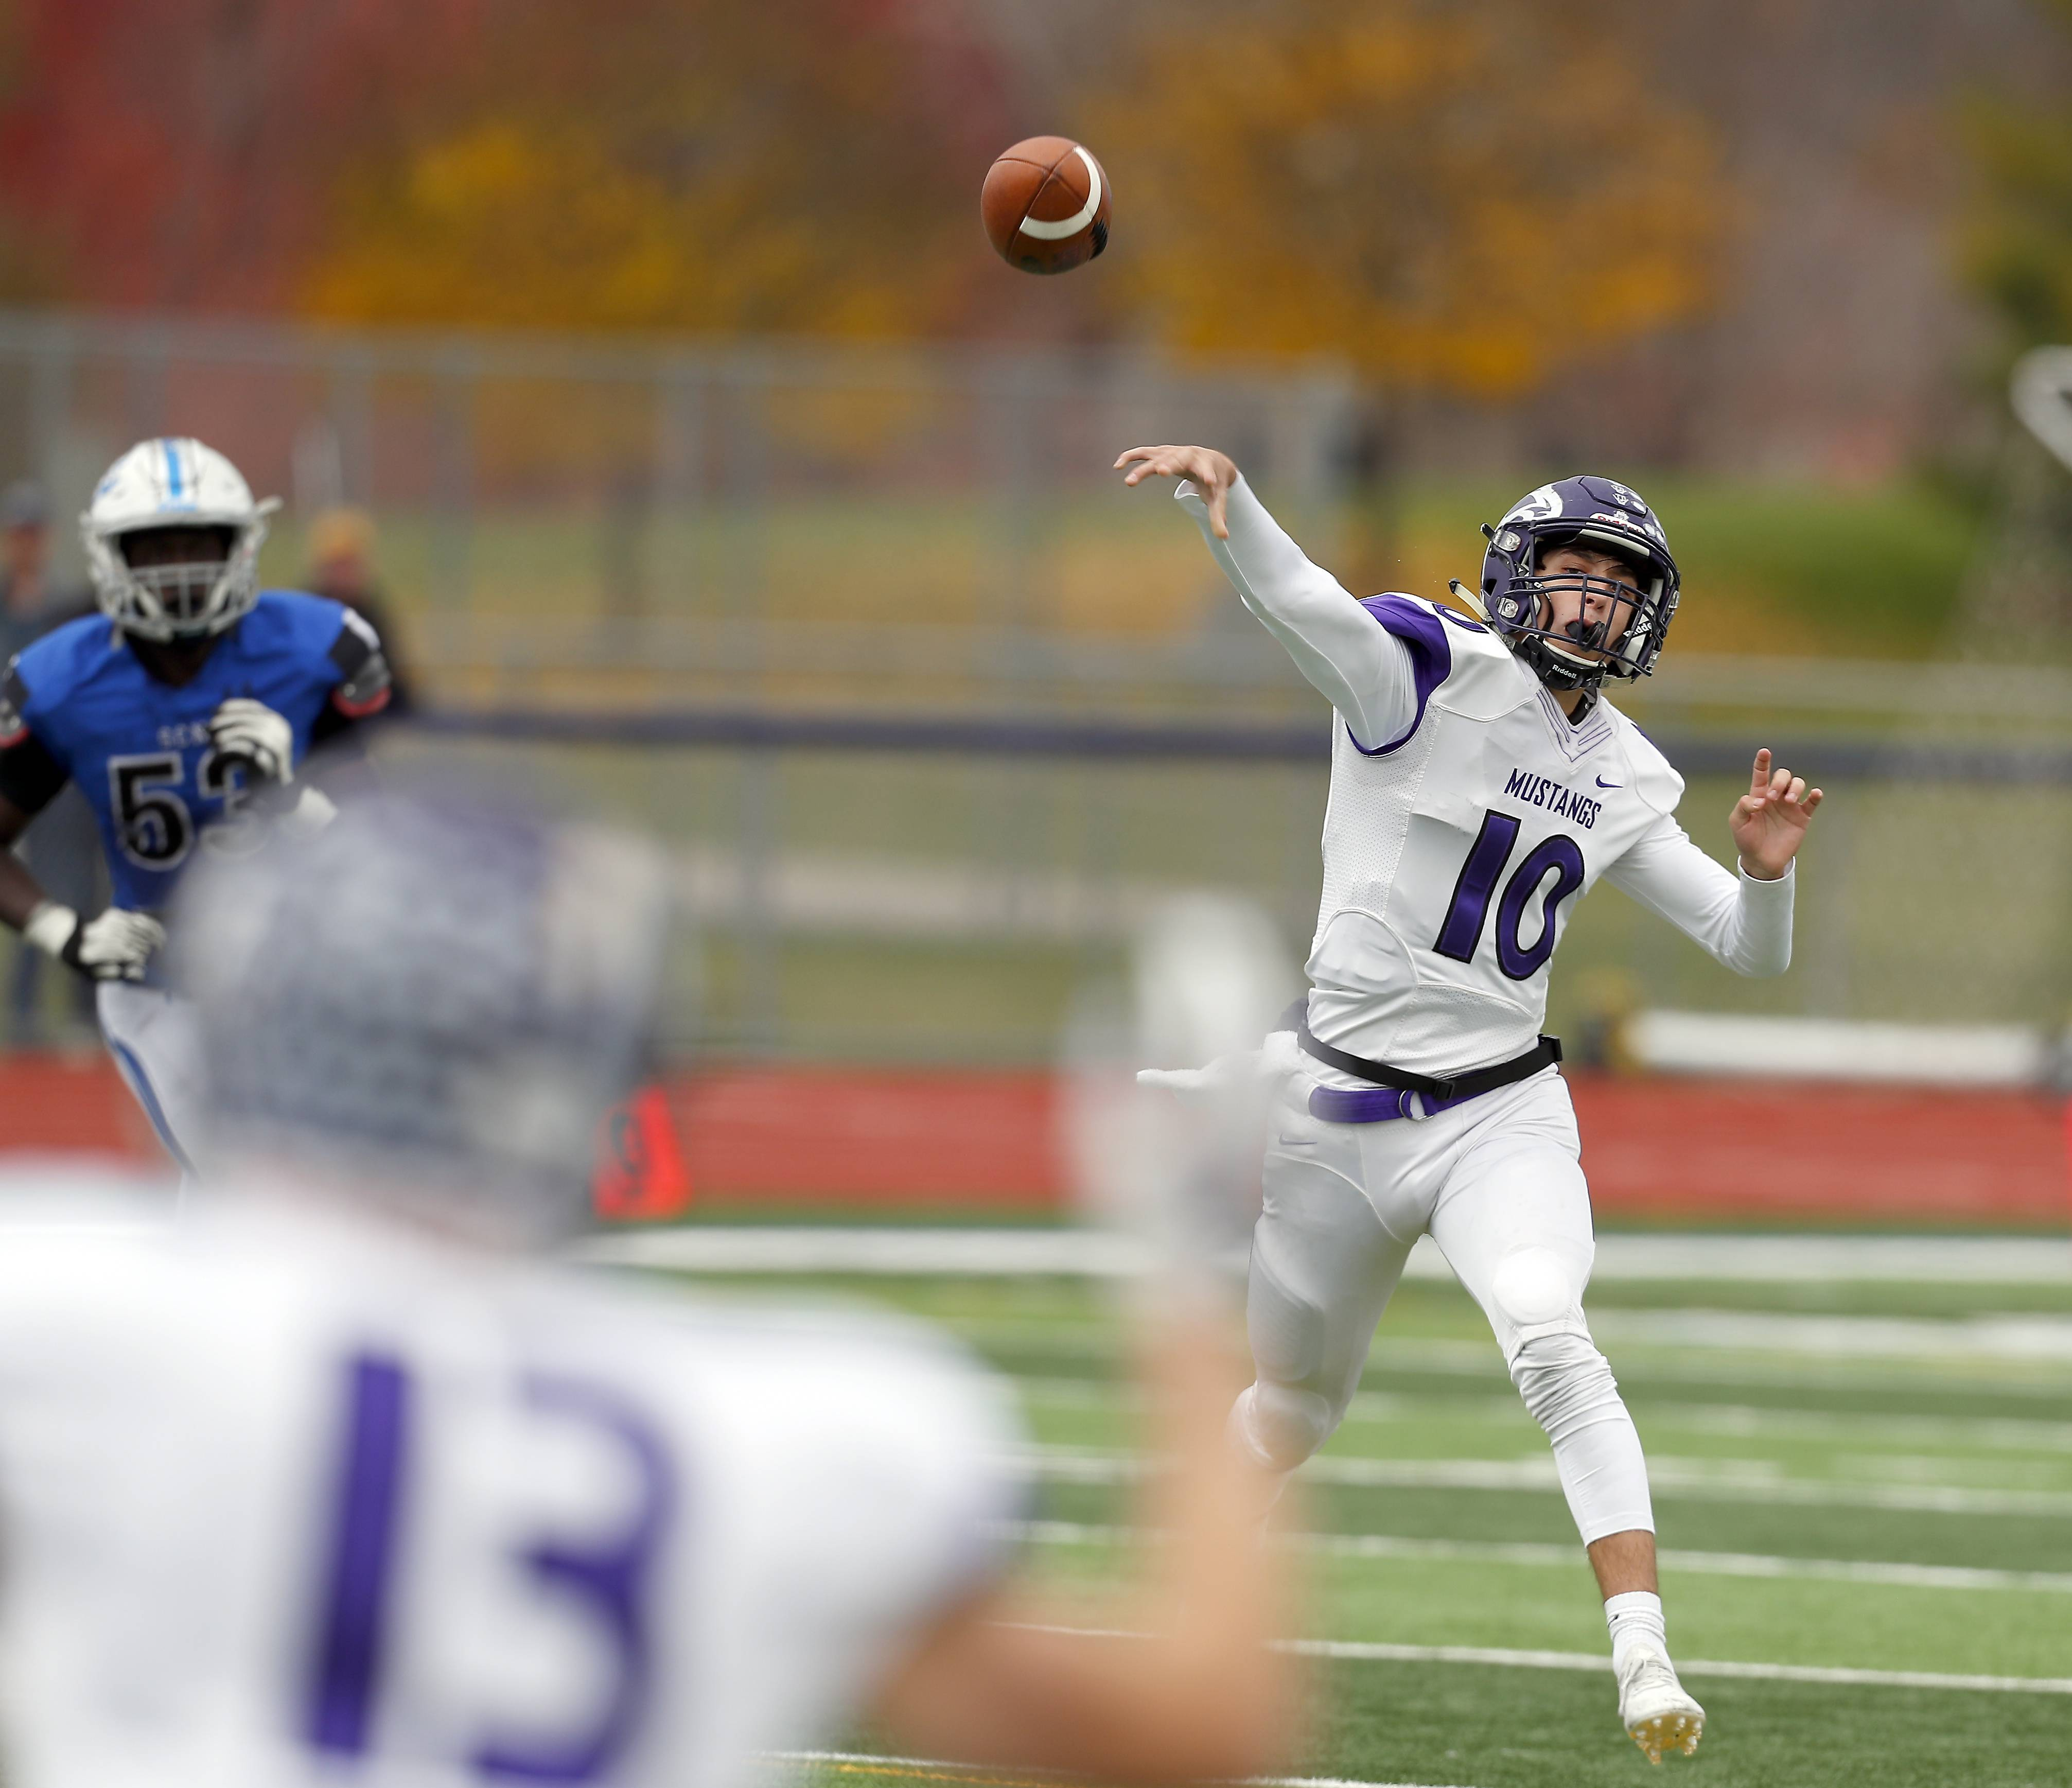 Rolling Meadows' Arkadiusz Kleniuk (10) throws to Rolling Meadows' Justin Kretz (13) Saturday during IHSA Class 7A playoff football in St. Charles.